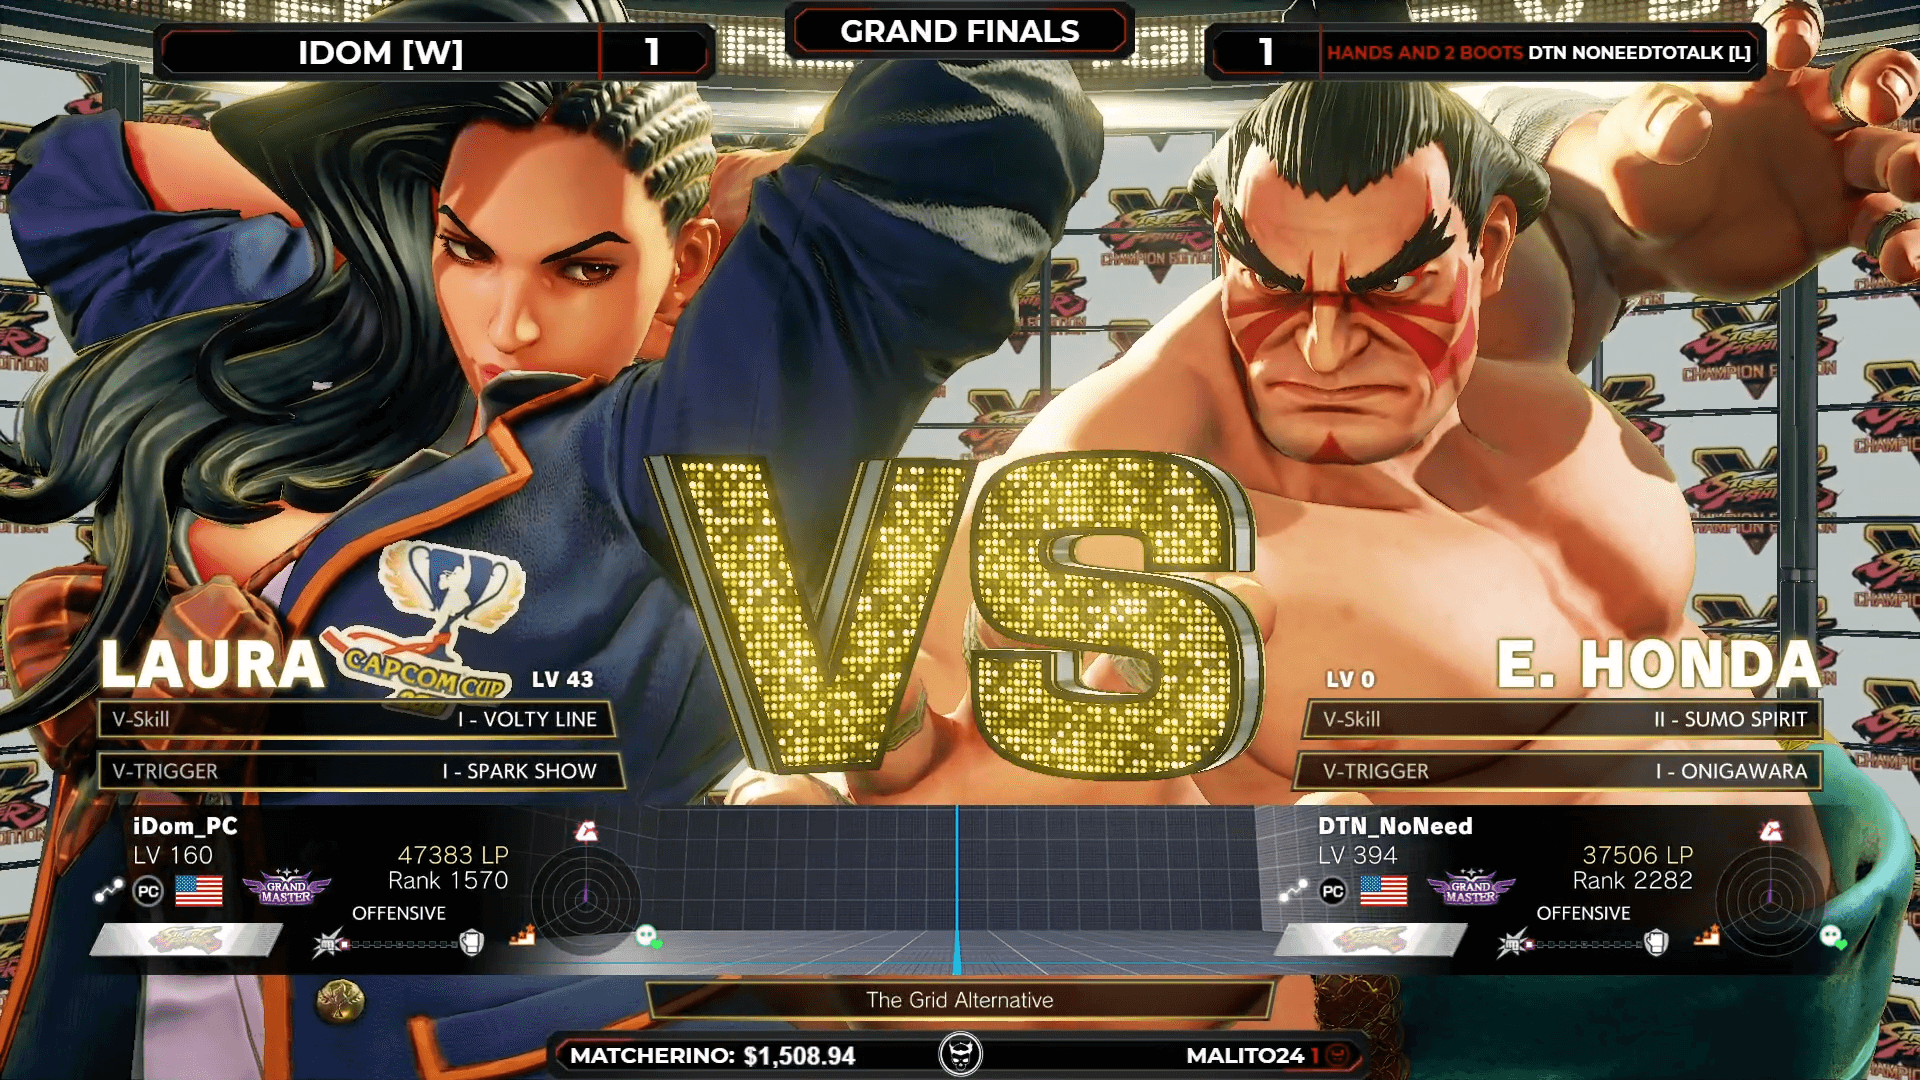 Street Fighter 2v2 Matches at the 1st Anniversary of NLBC Online